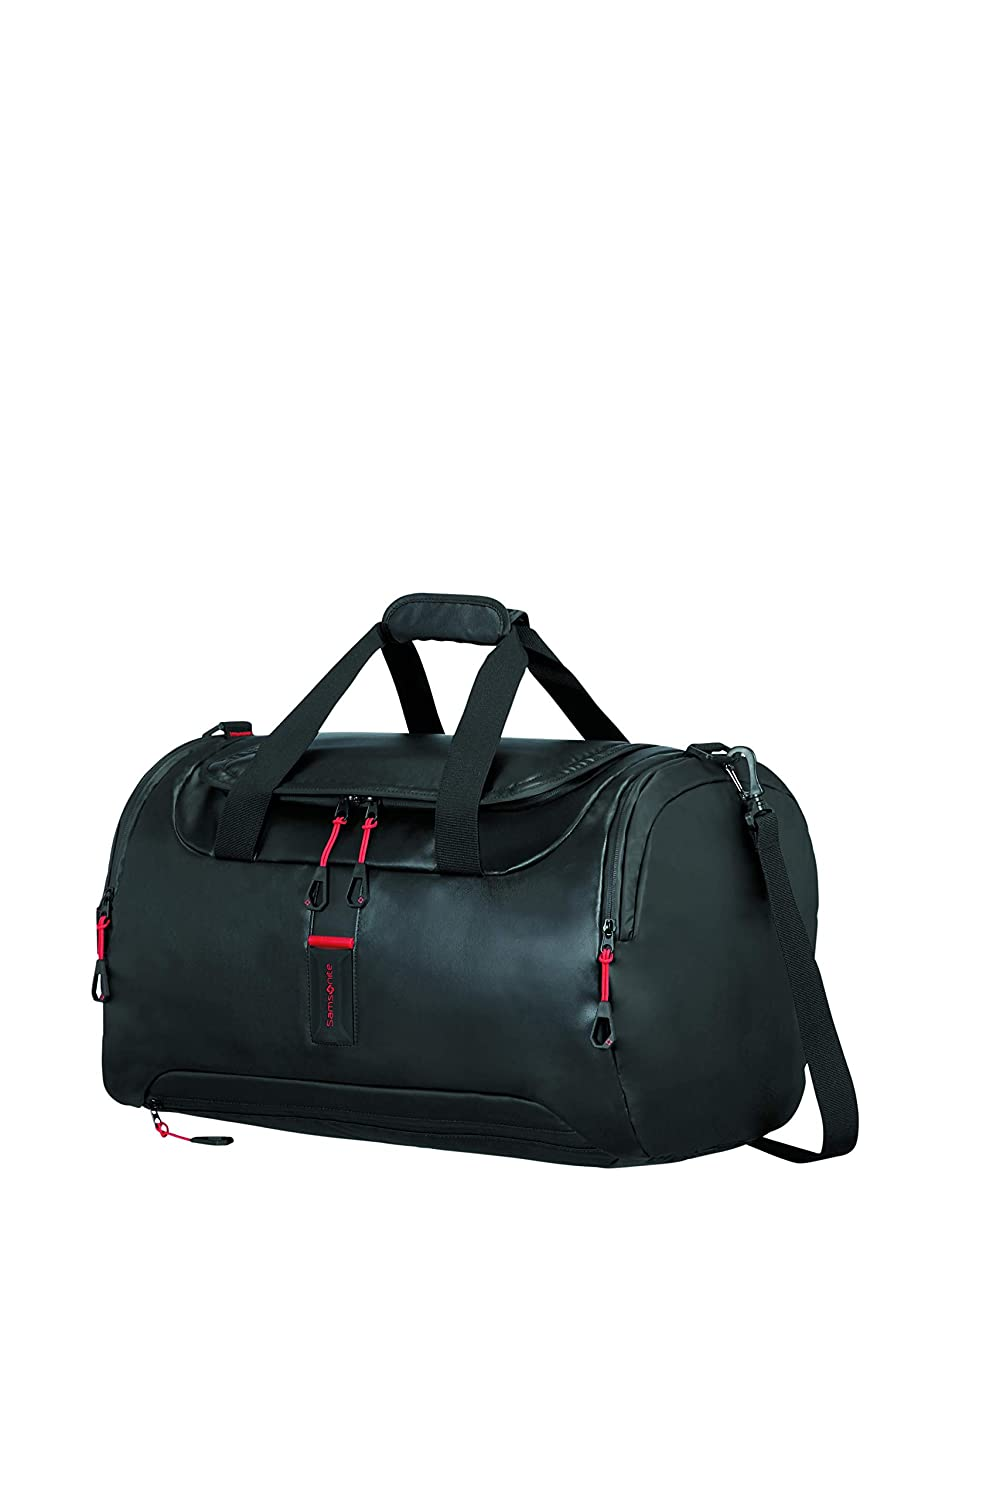 Samsonite Paradiver Light Duffle 51/20, 51 cm, 47 L, Black